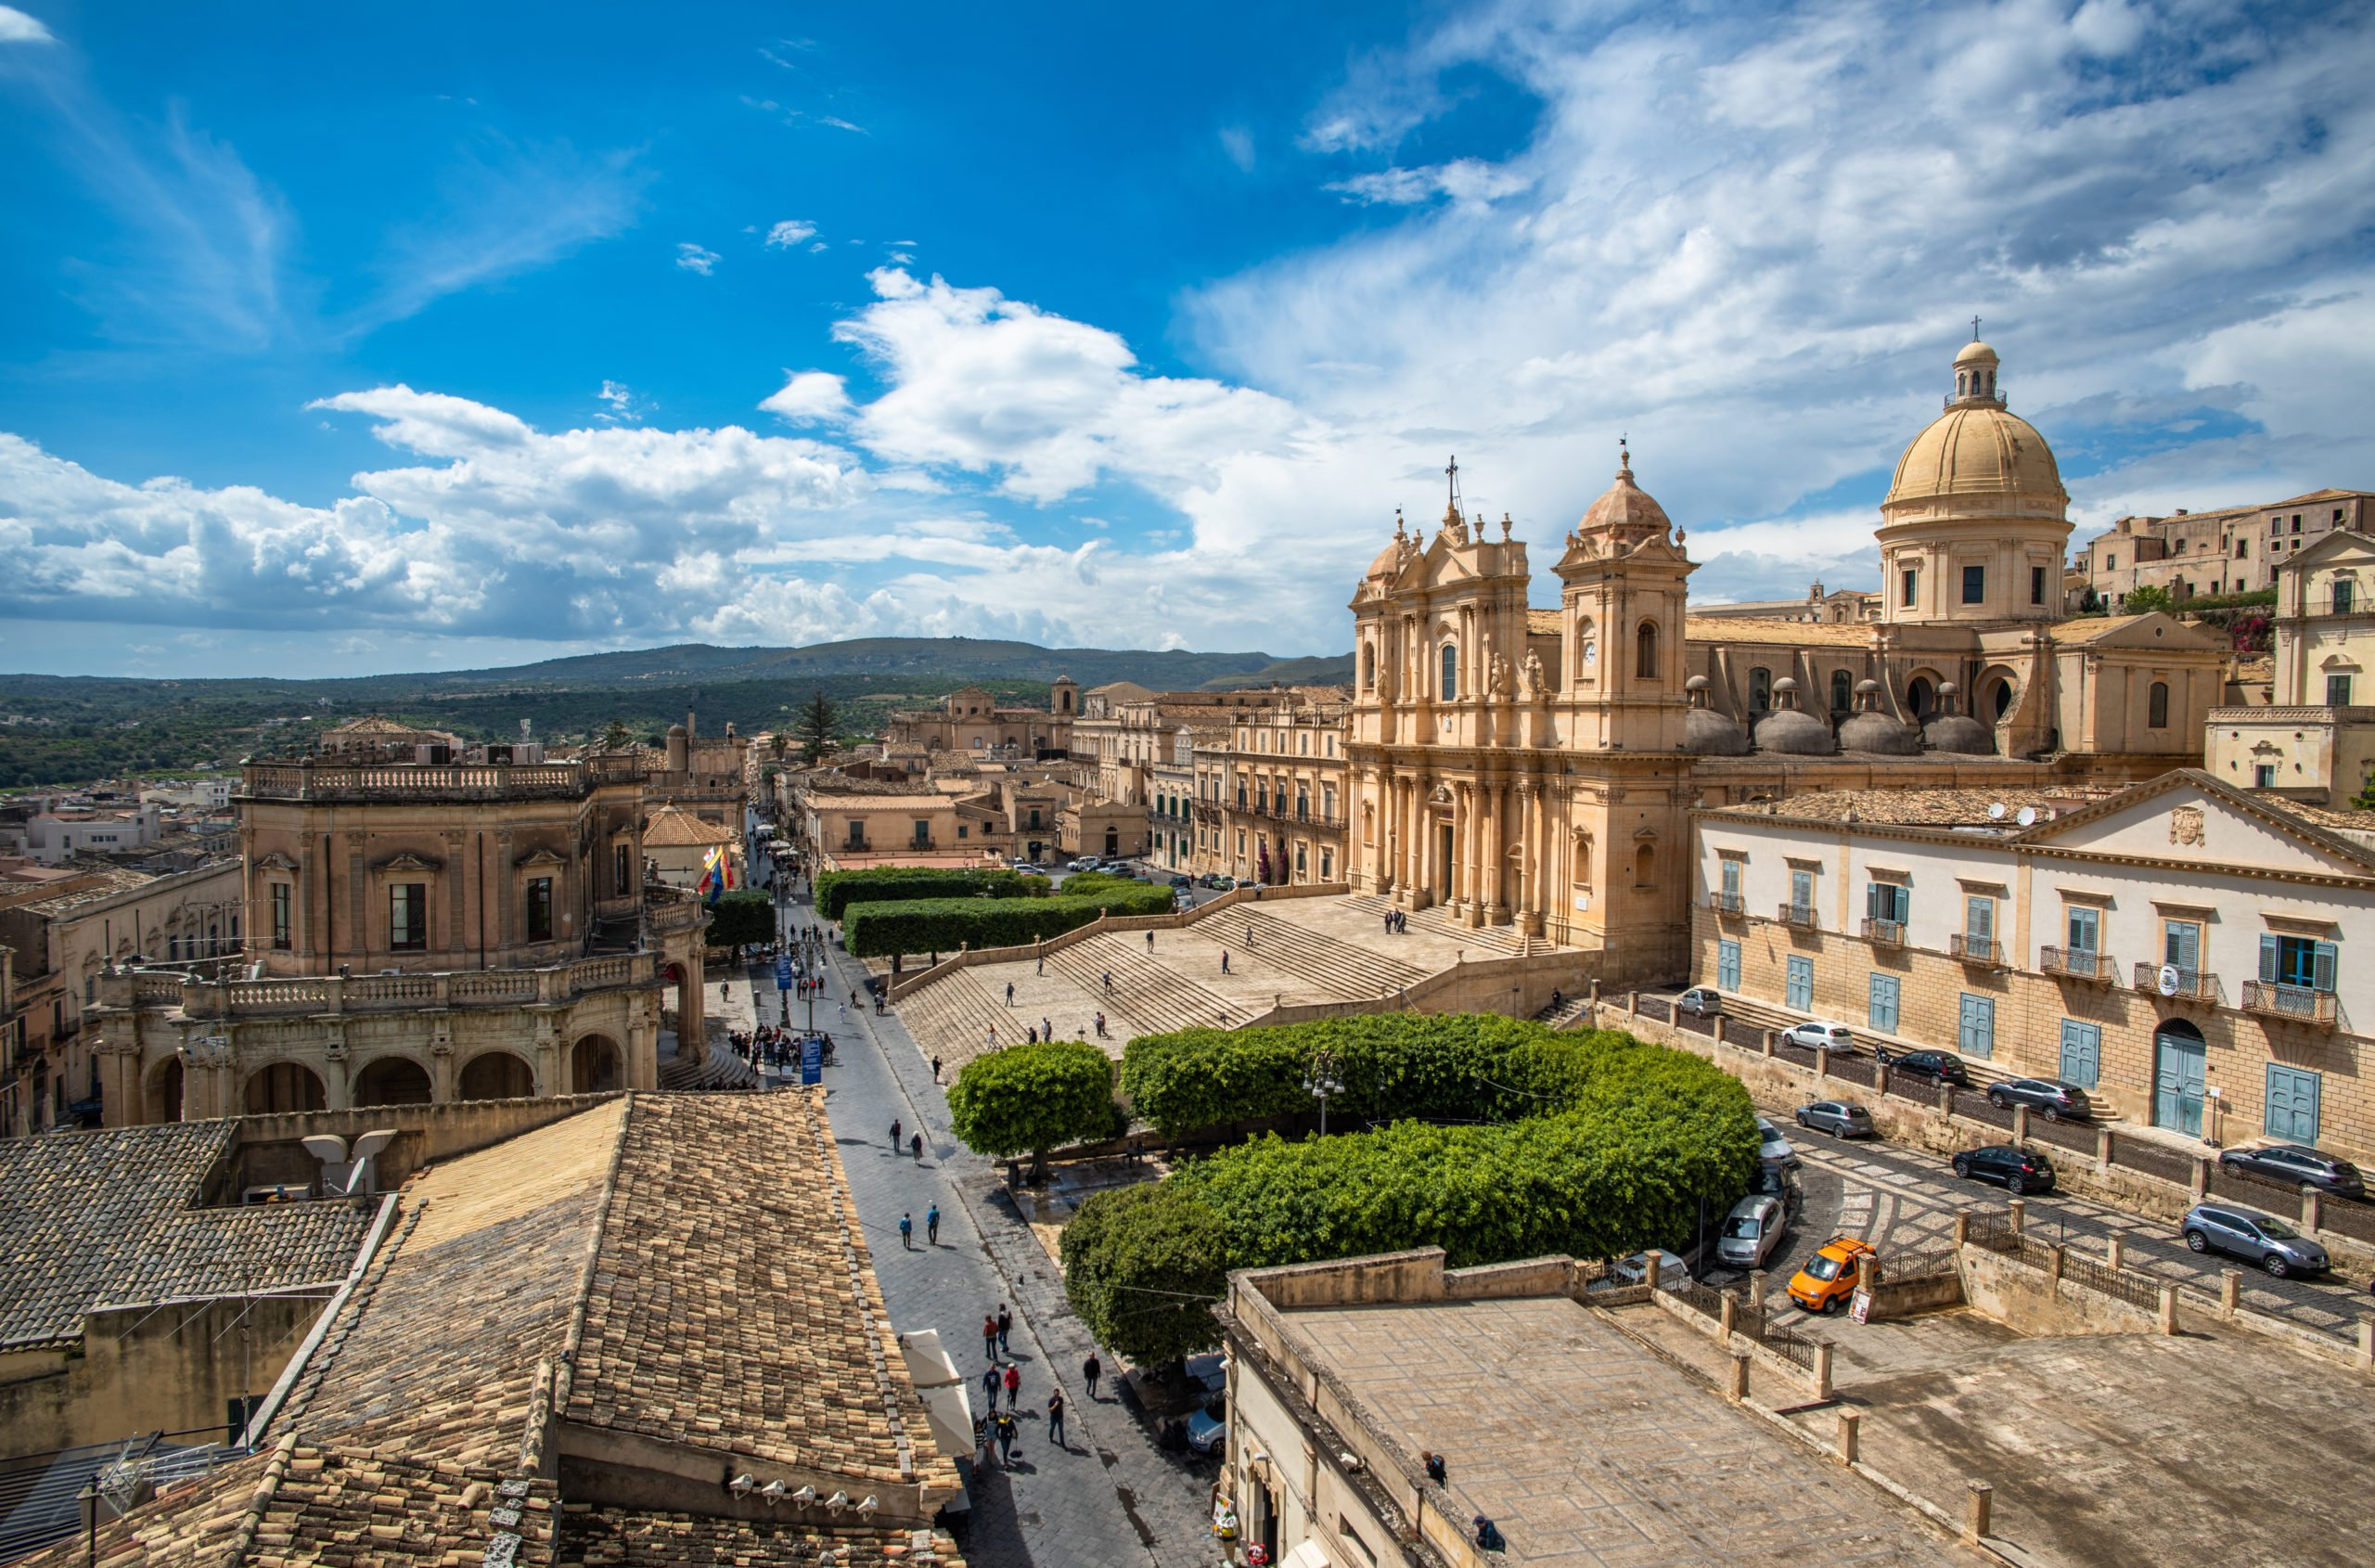 Stroll Trough The Beautiful City Of Noto On The Taste Of Sicily 8 Day Package Tour